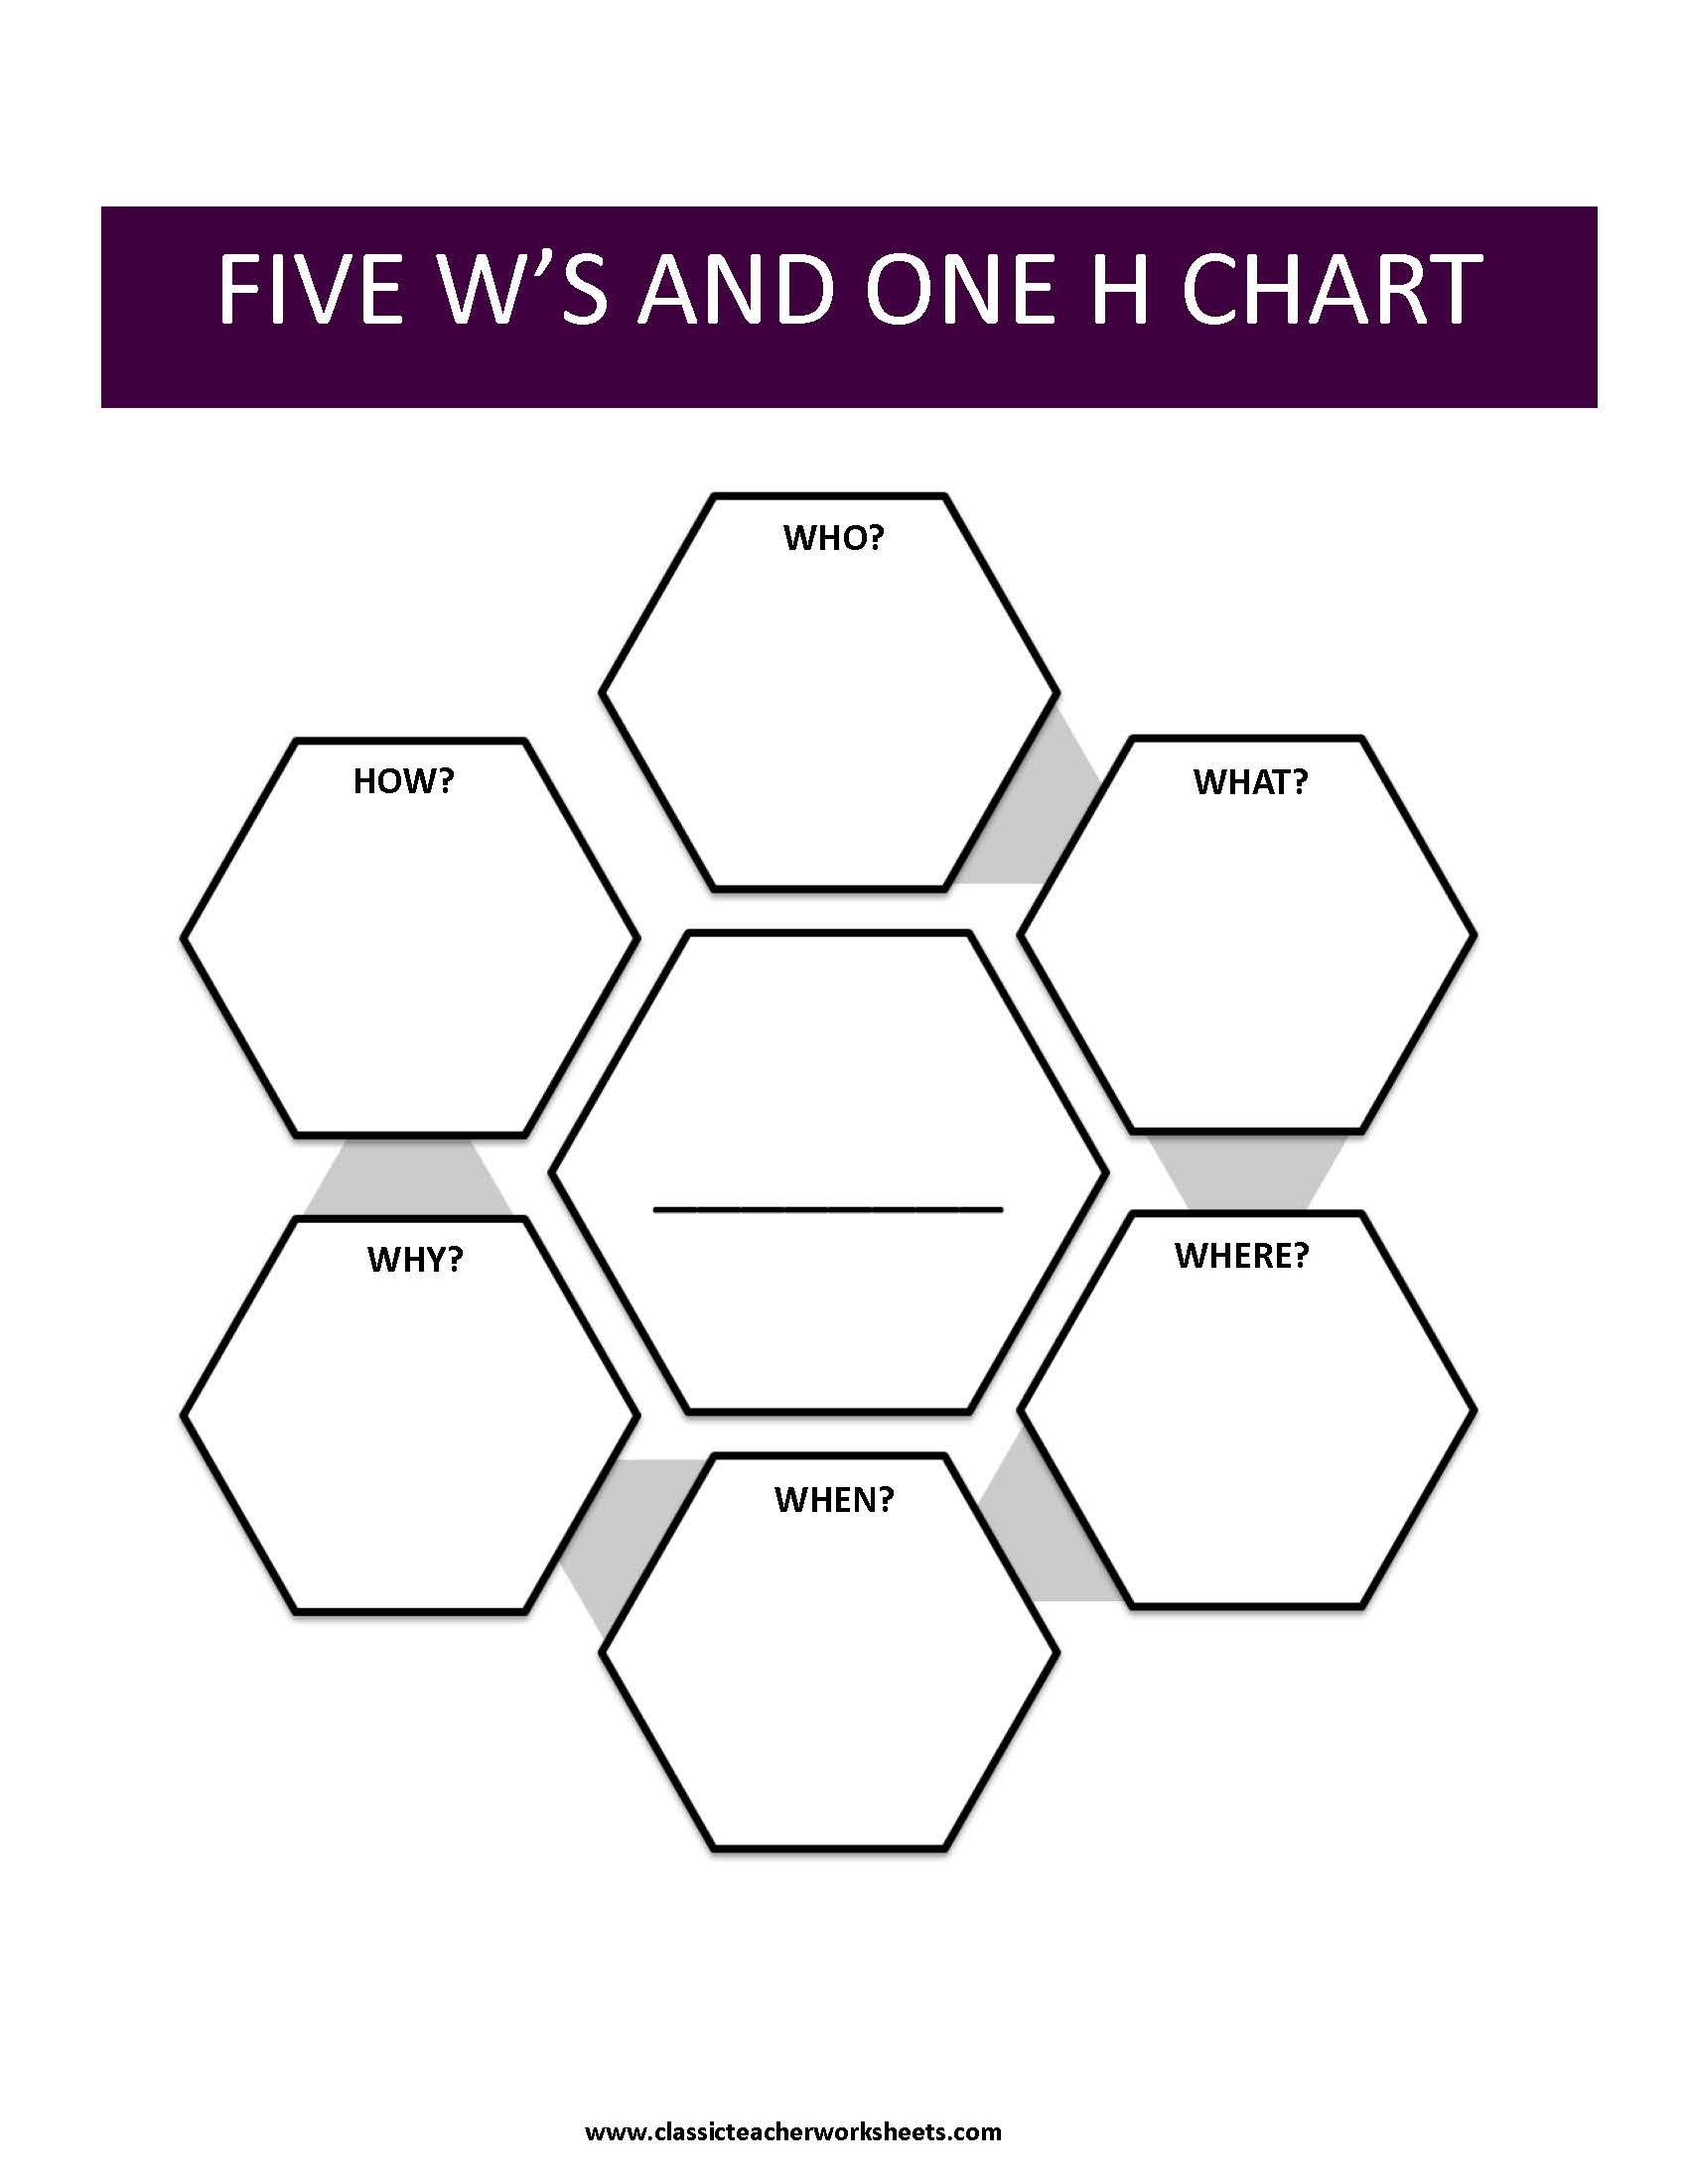 Check Out Our Collection Of Writing Worksheets At Classicteacherworksheets Worksheet